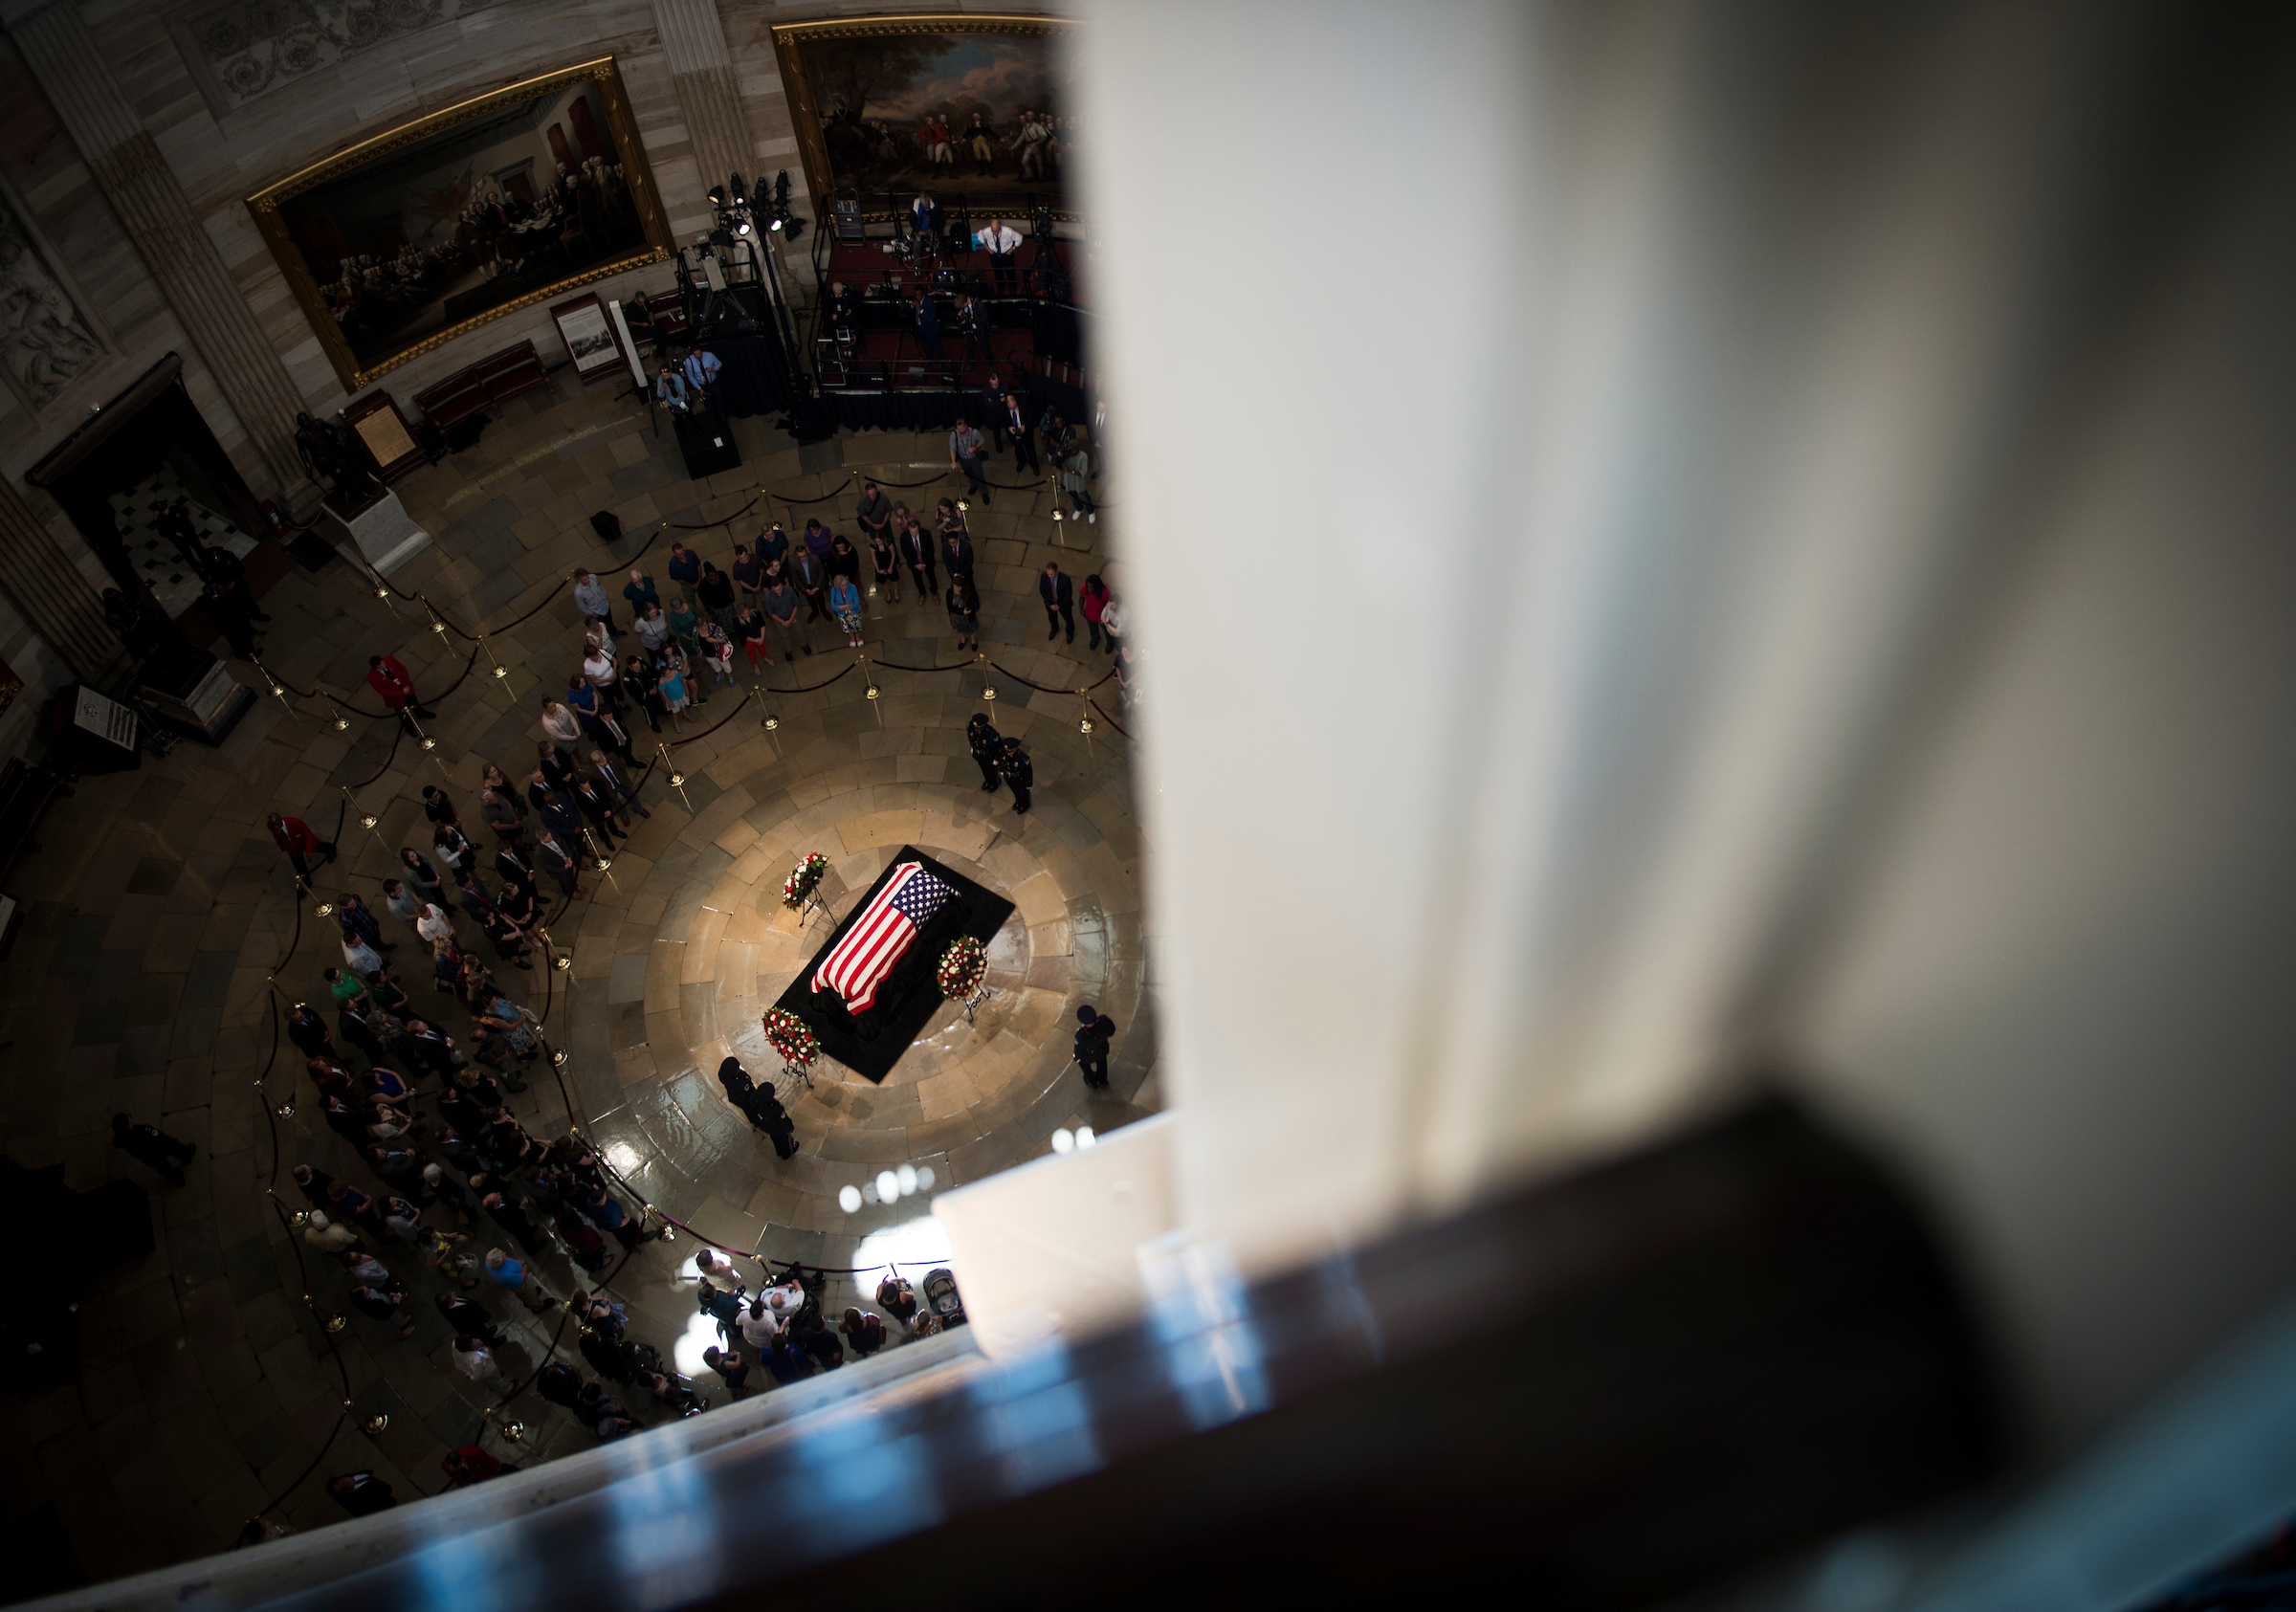 UNITED STATES – AUGUST 31: The casket of Sen. John McCain, R-Ariz., lies in state in the Capitol Rotunda Friday August 31, 2018. (Photo By Sarah Silbiger/CQ Roll Call)